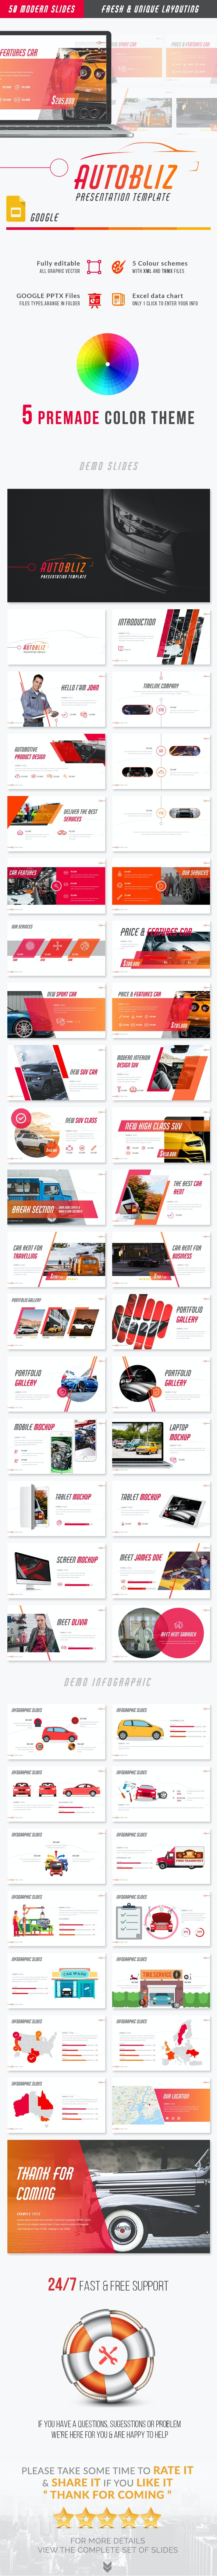 Autobliz - Automotive Google Slides Presentation Template - Google Slides Presentation Templates